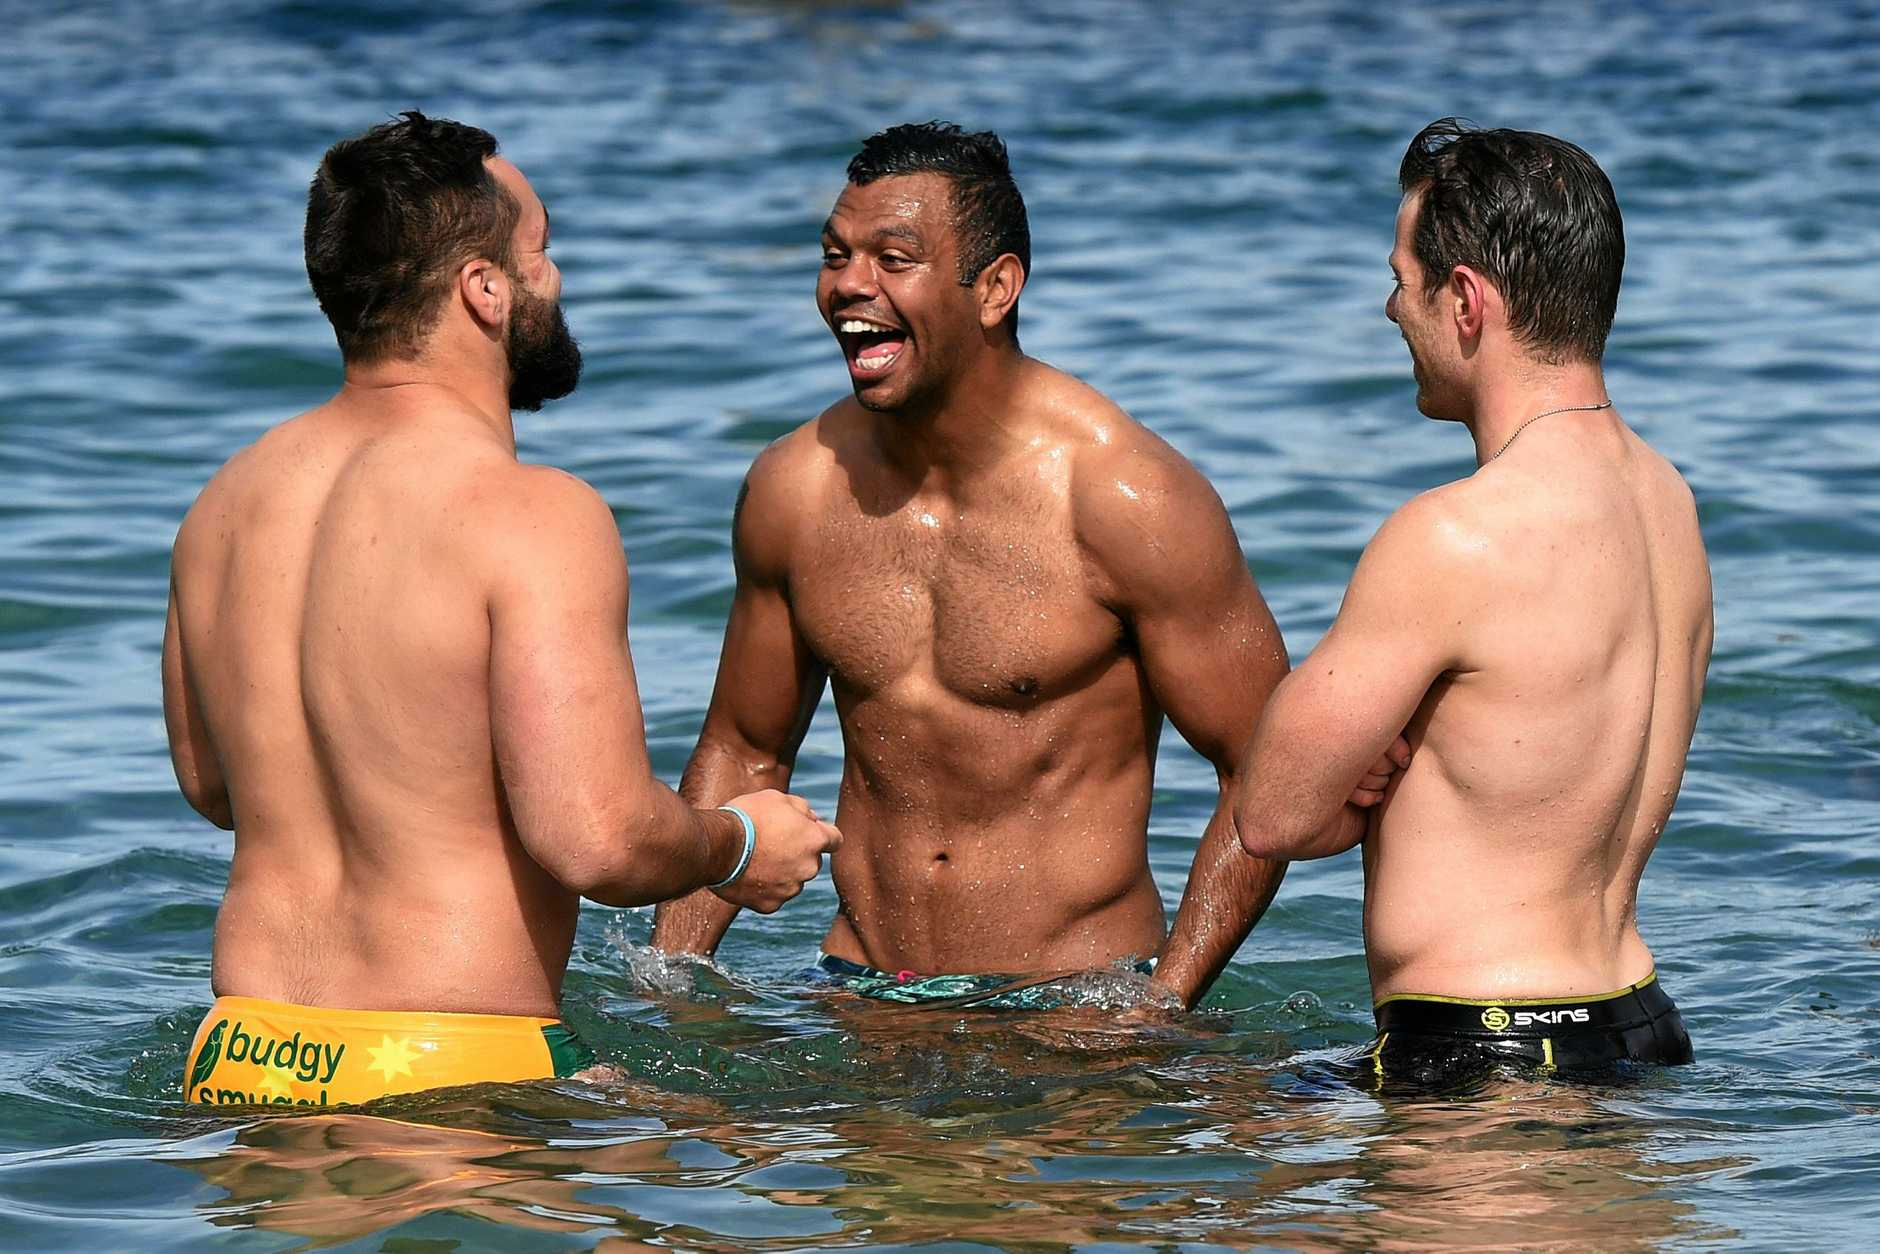 Wallabies player Kurtley Beale (Centre) has a laugh as he cools down following their final training session at Little Manly Beach in Sydney, Friday, Aug. 28, 2015. The Wallabies fly out tomorrow for the Rugby World Cup in England. (AAP Image/Dean Lewins) NO ARCHIVING